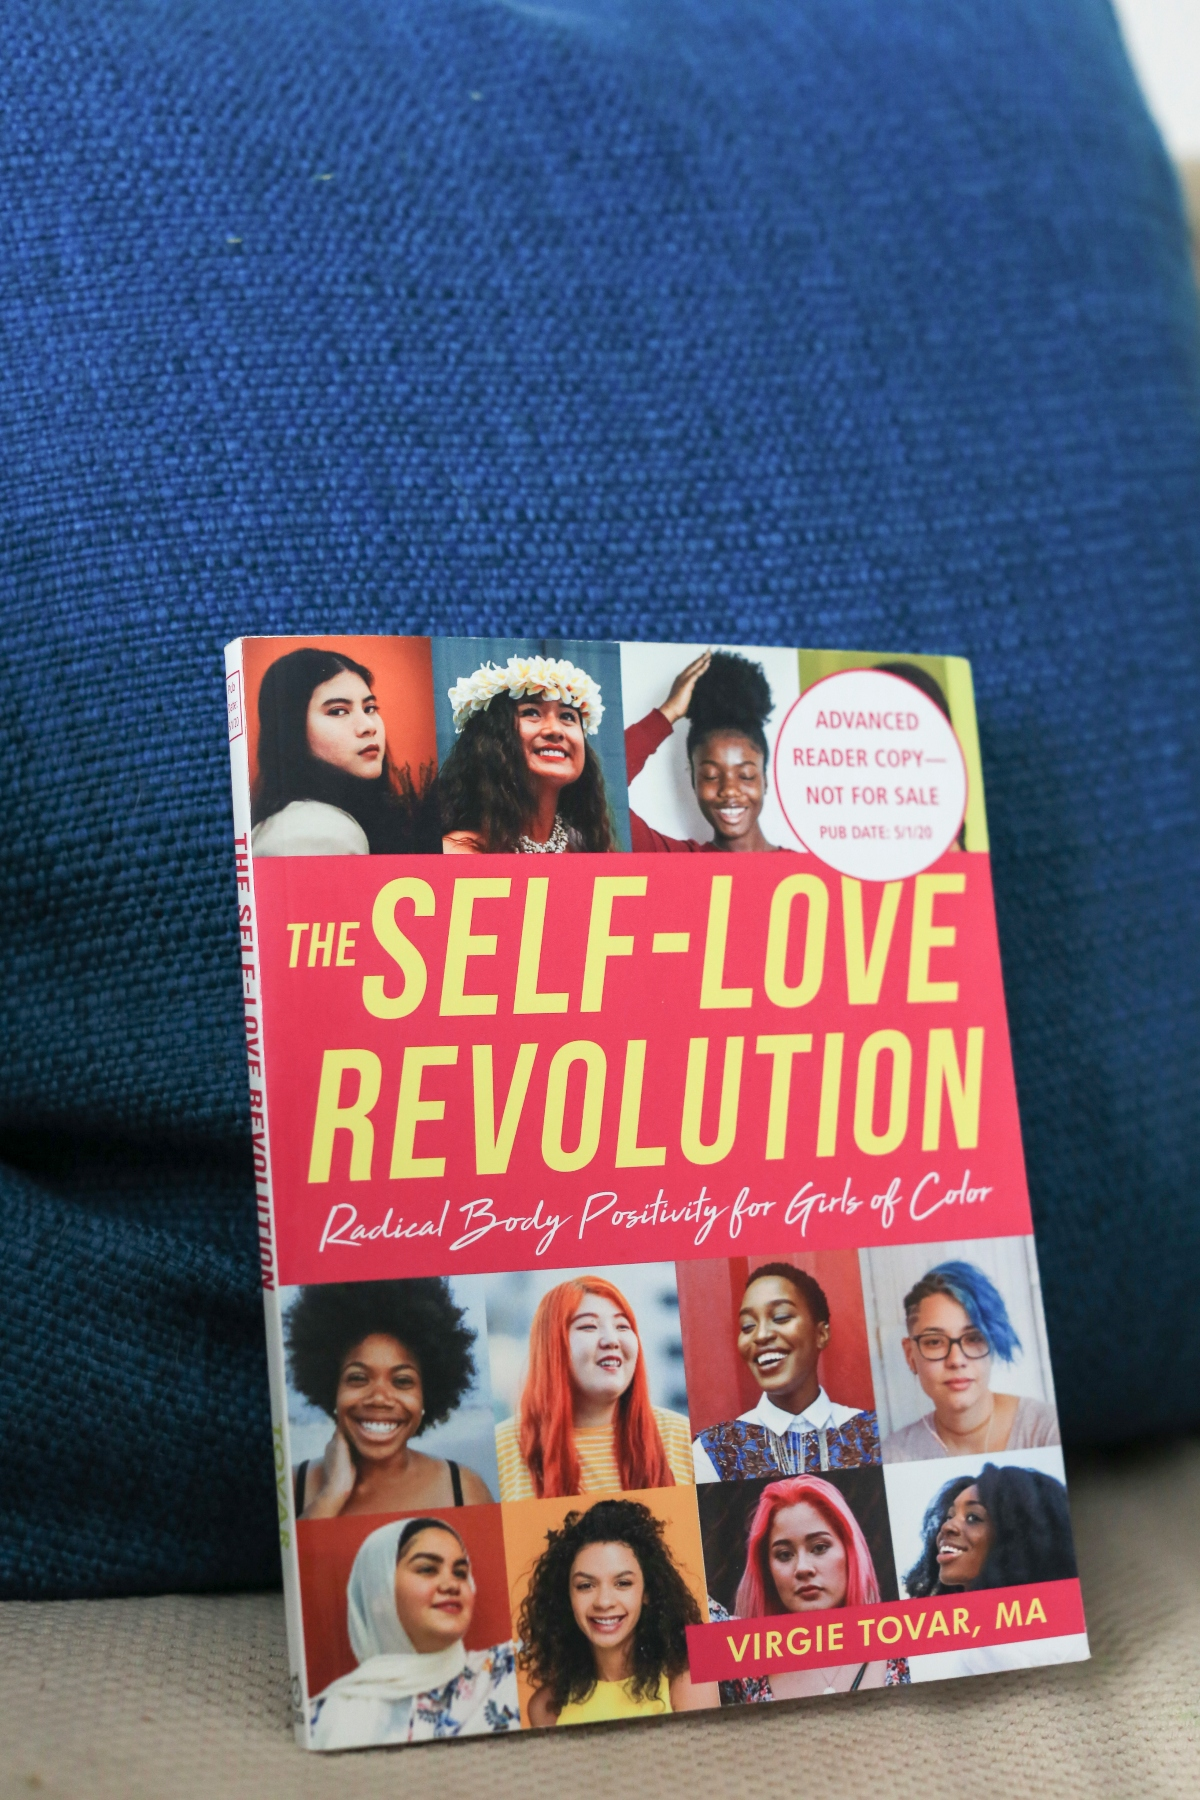 The Self-Love Revolution. Radical Body Positivity for Girls of Color. Virgie Tovar